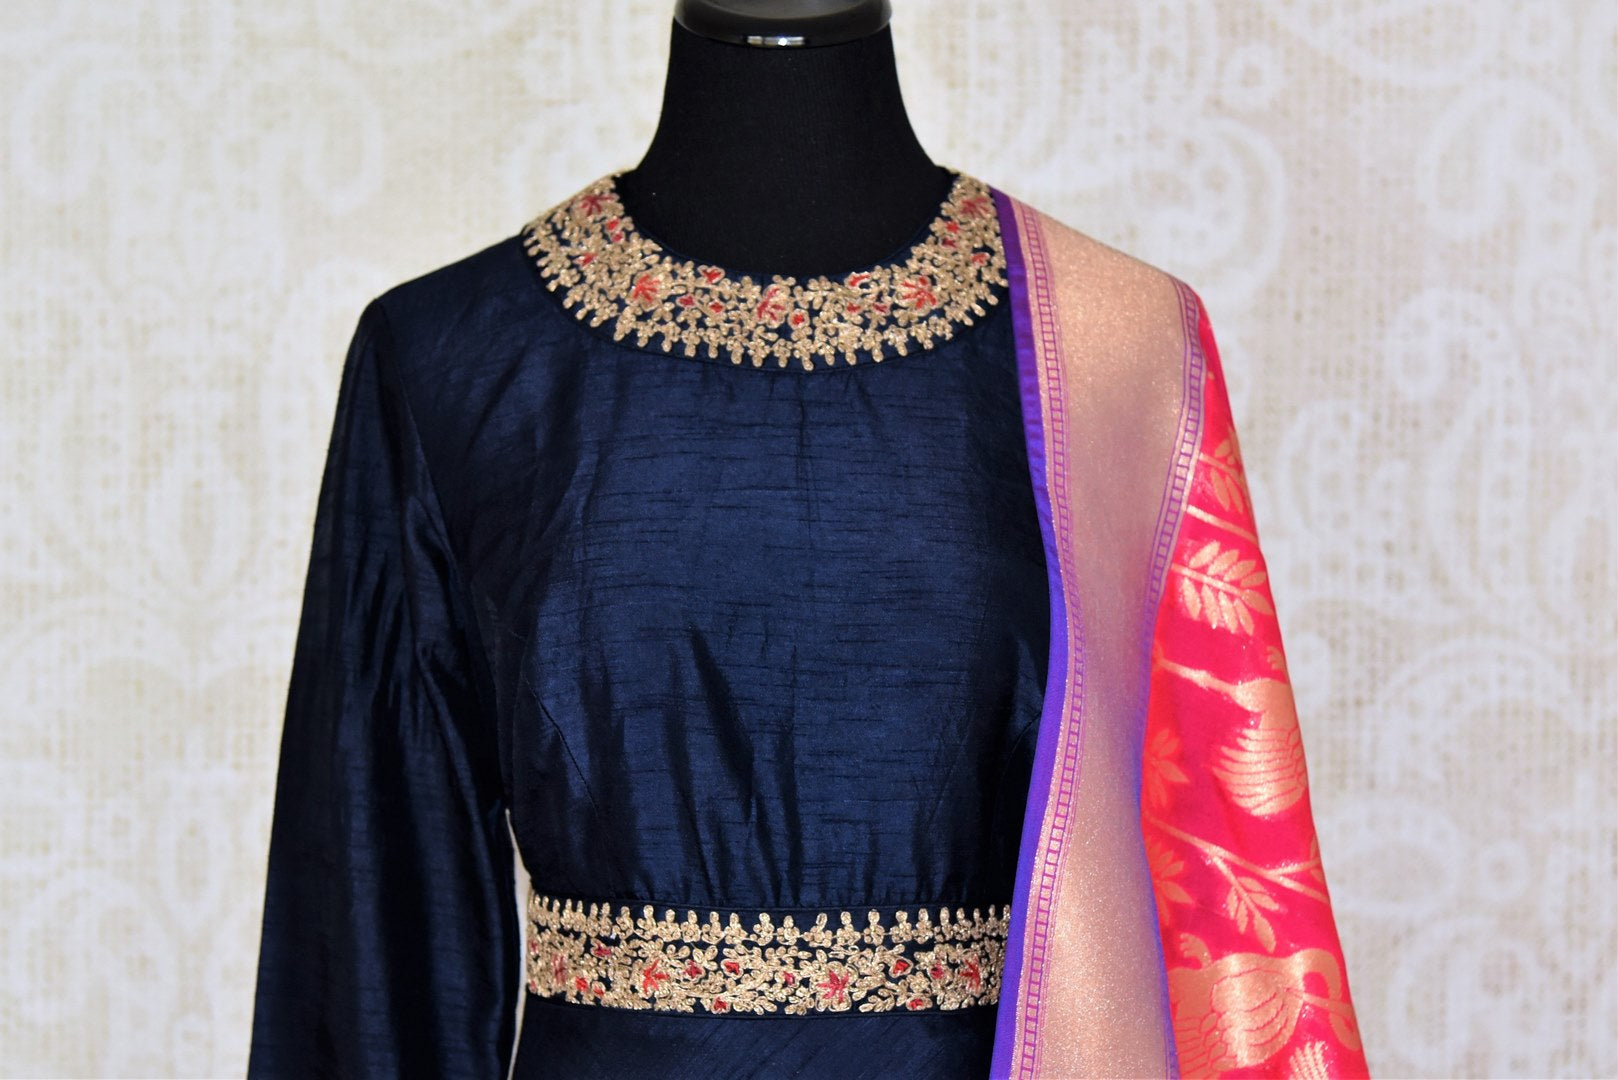 Buy navy blue embroidered floorlength Anarkali with pink dupatta online in USA from Pure Elegance. Add exquisite Indian designer suits, Indian dresses, wedding lehengas in beautiful styles and designs to your ethnic wardrobe from our Indian clothing store in USA or shop online.-front